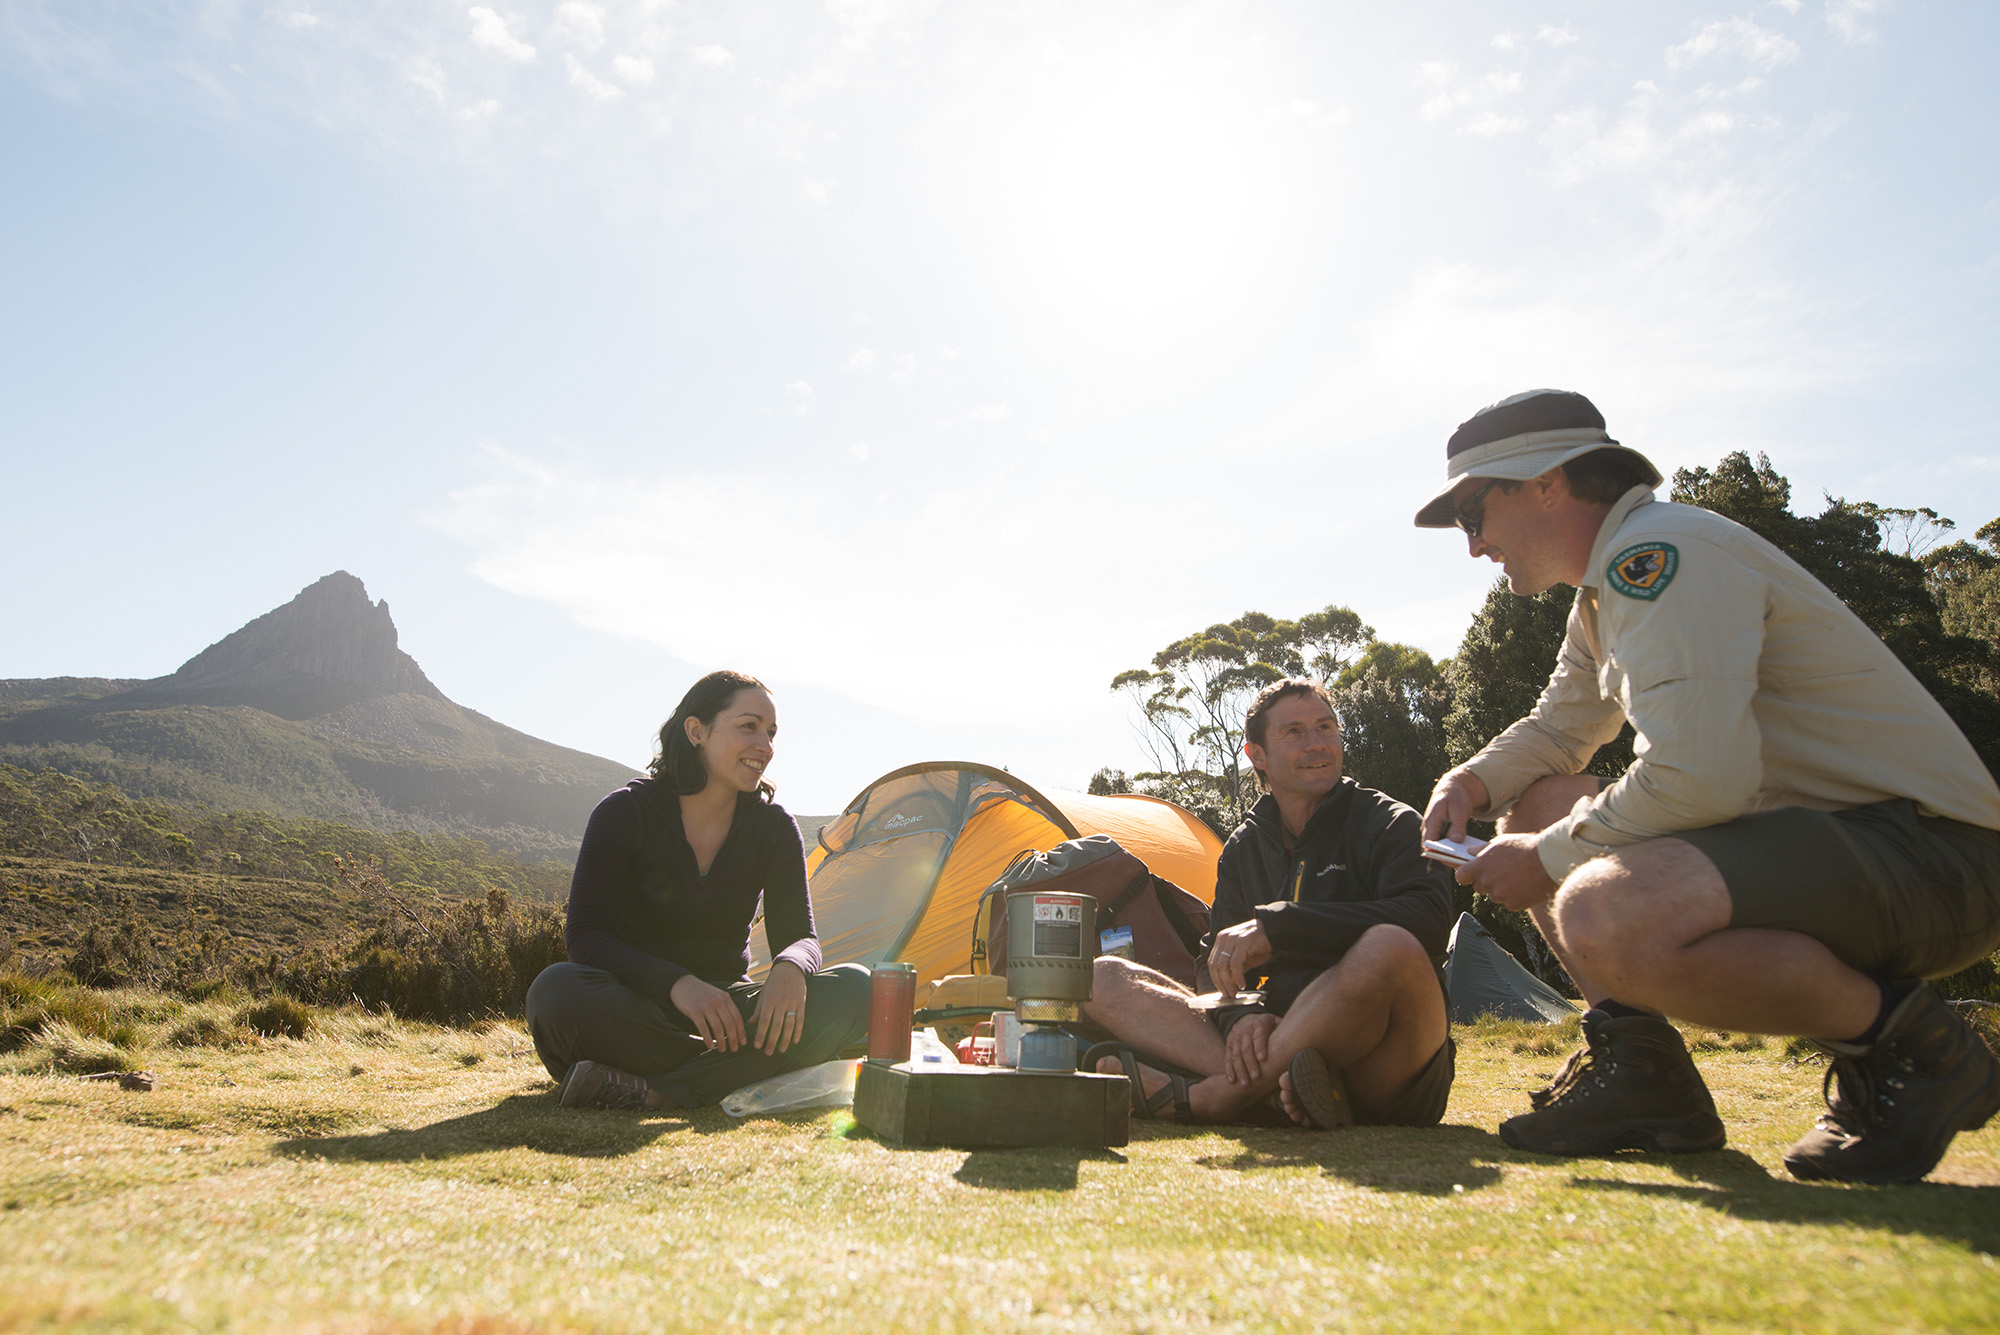 Ranger and campers, Overland Track